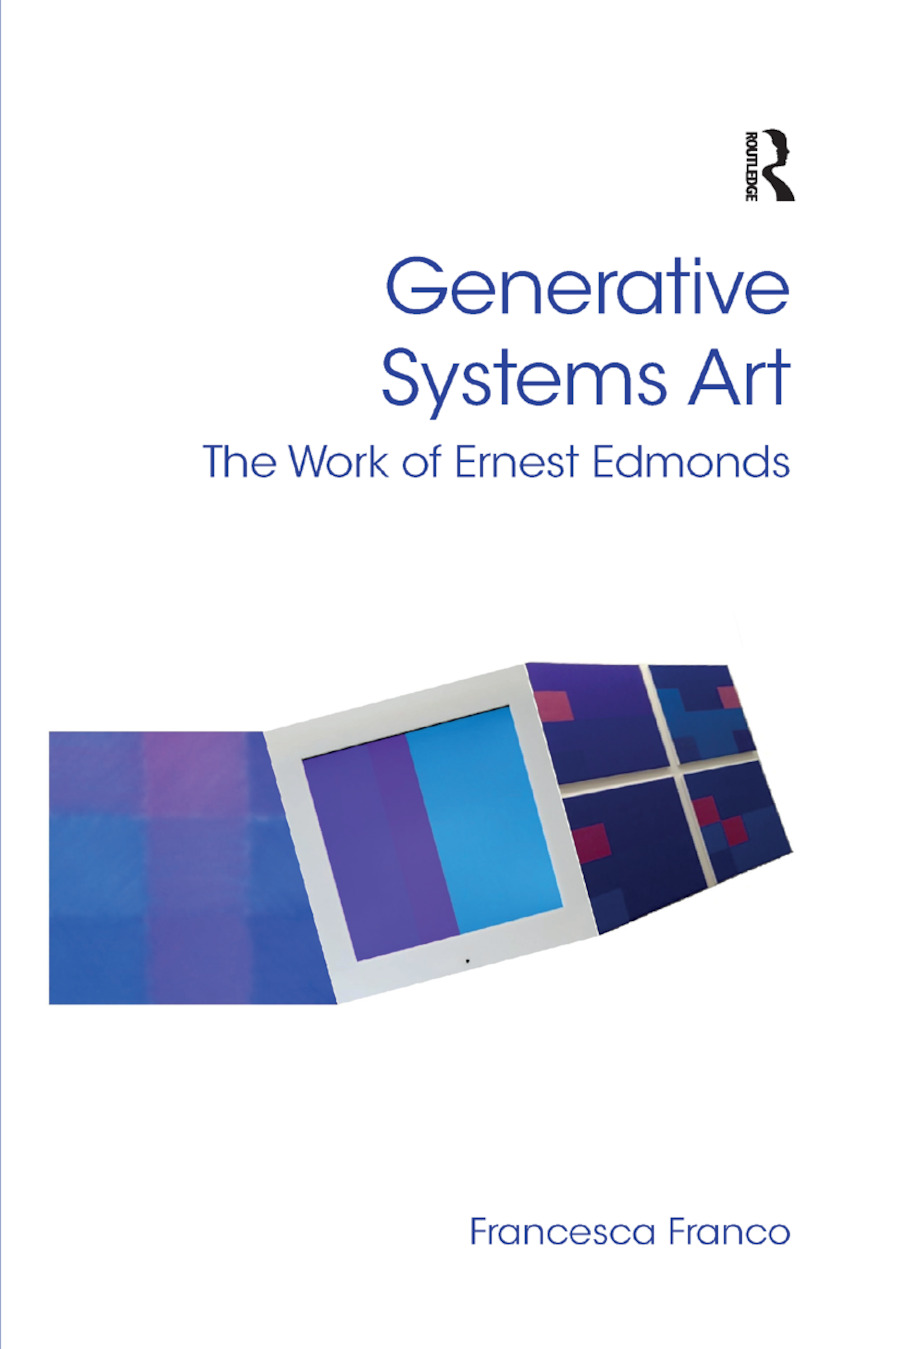 Generative Systems Art: The Work of Ernest Edmonds book cover